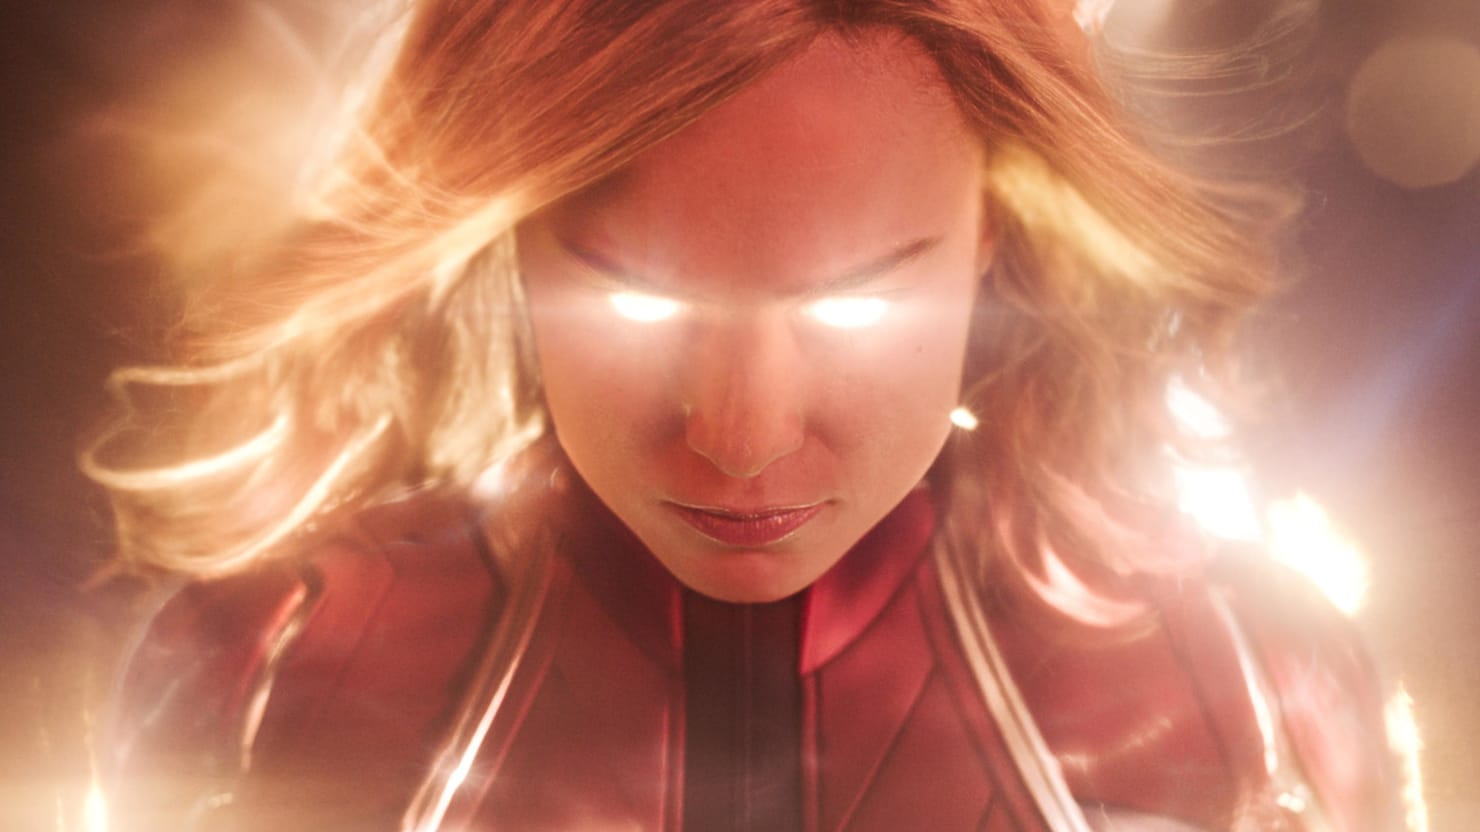 How Brie Larson's 'Captain Marvel' Made Angry White Men Lose Their